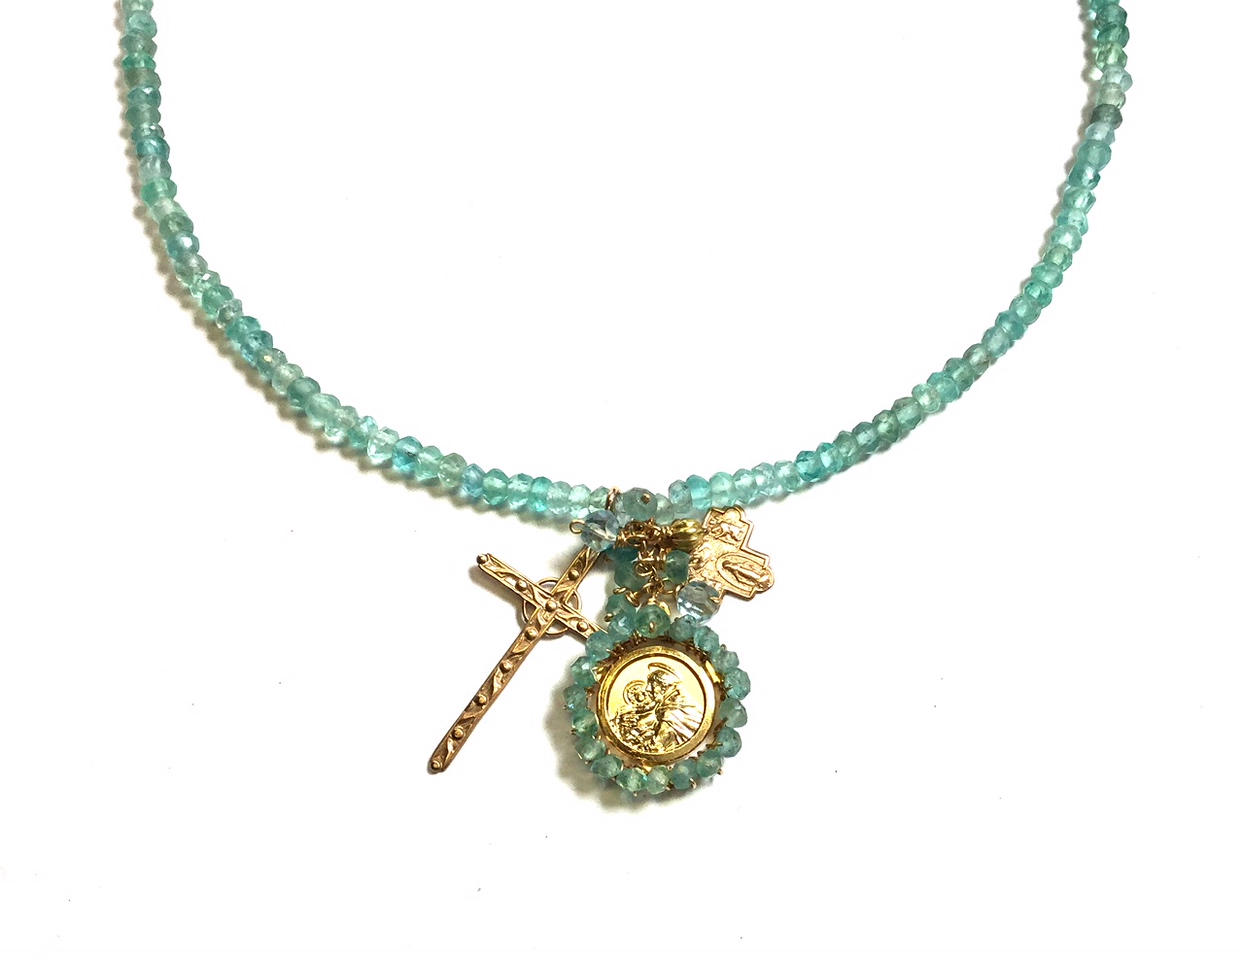 An image of a teal bead necklace from Andrea Barnett